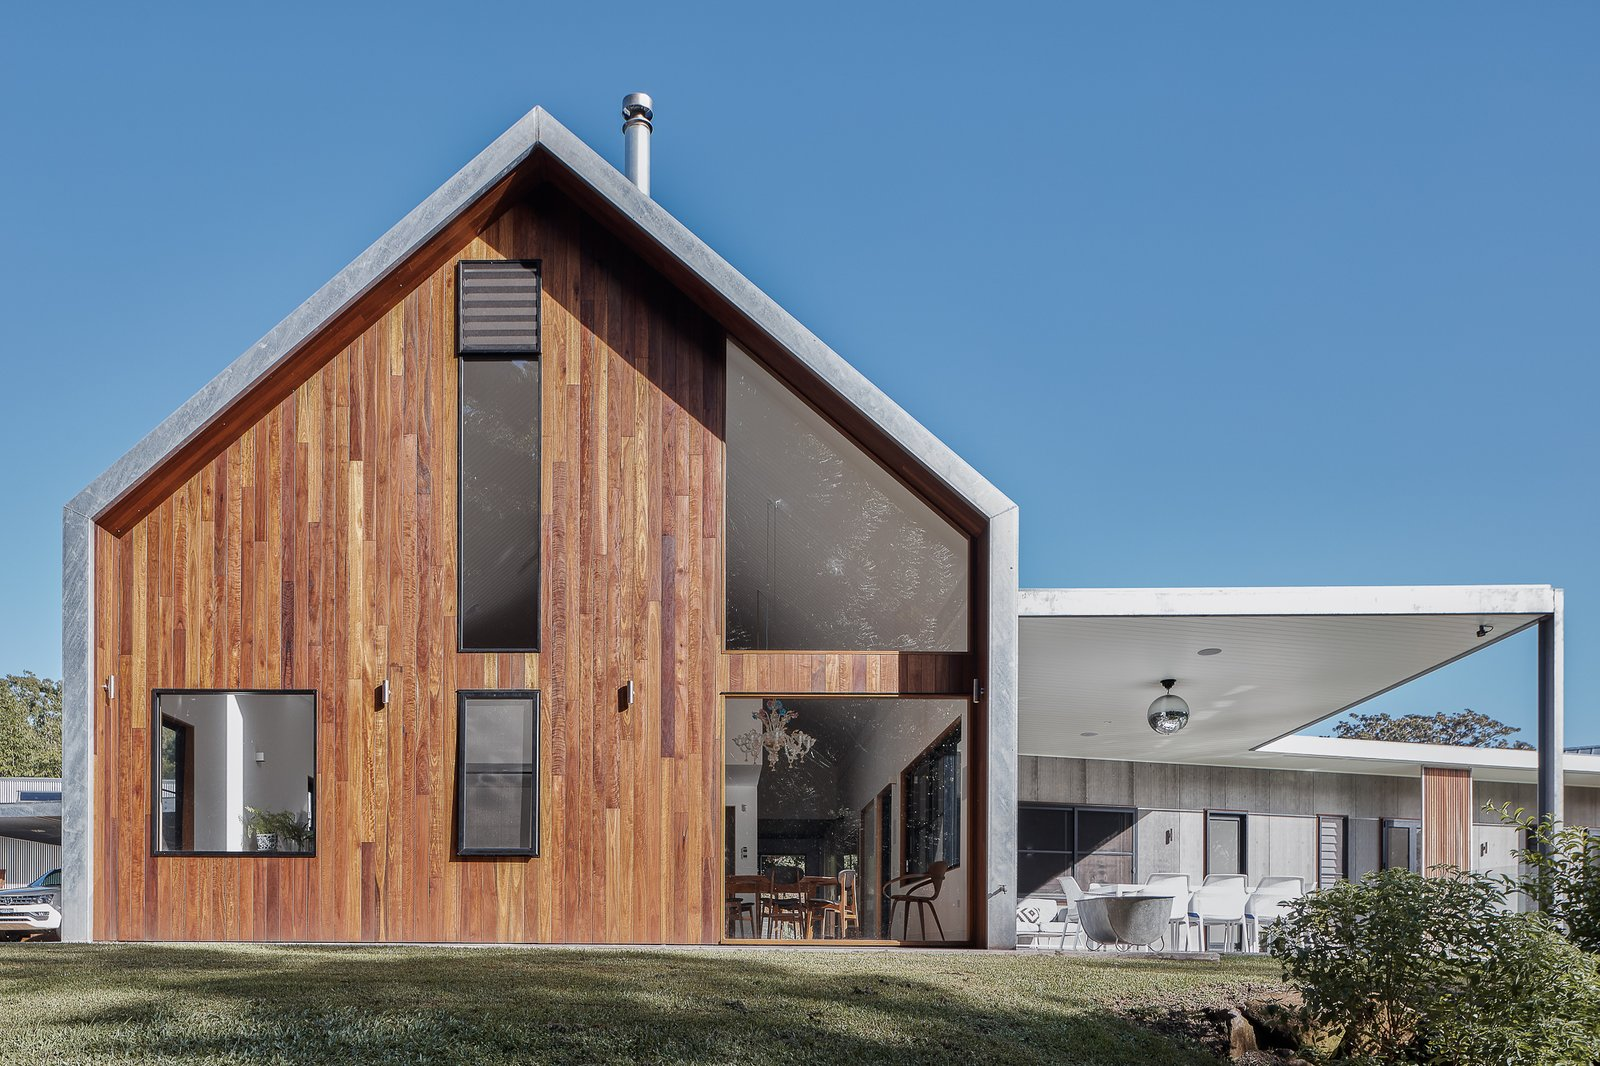 Exterior, Metal Roof Material, Metal Siding Material, House Building Type, Gable RoofLine, and Wood Siding Material A hidden portal steel frame provides strong support.  Photo 7 of 19 in Two Barn-Like Volumes Make Up This Low-Maintenance Australian Home